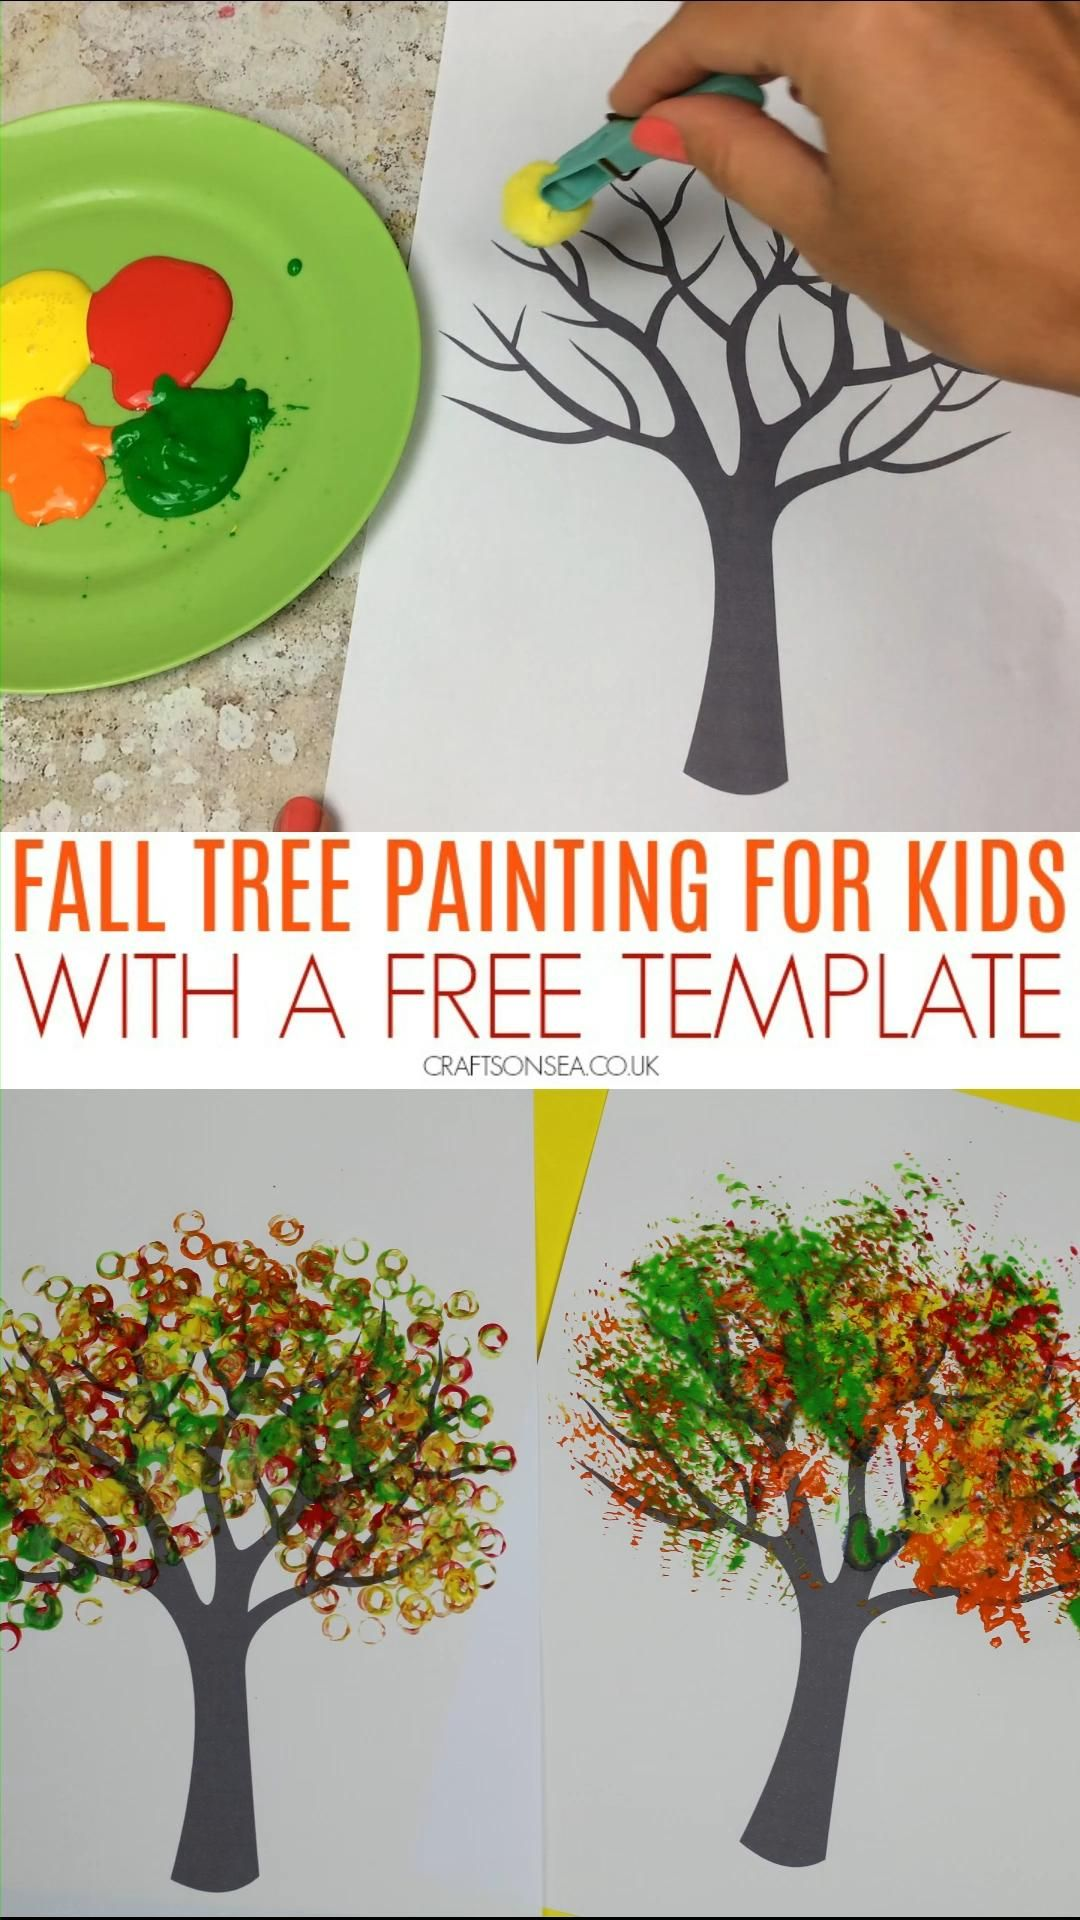 Autumn Tree Painting Ideas for Kids (FREE TEMPLATE)